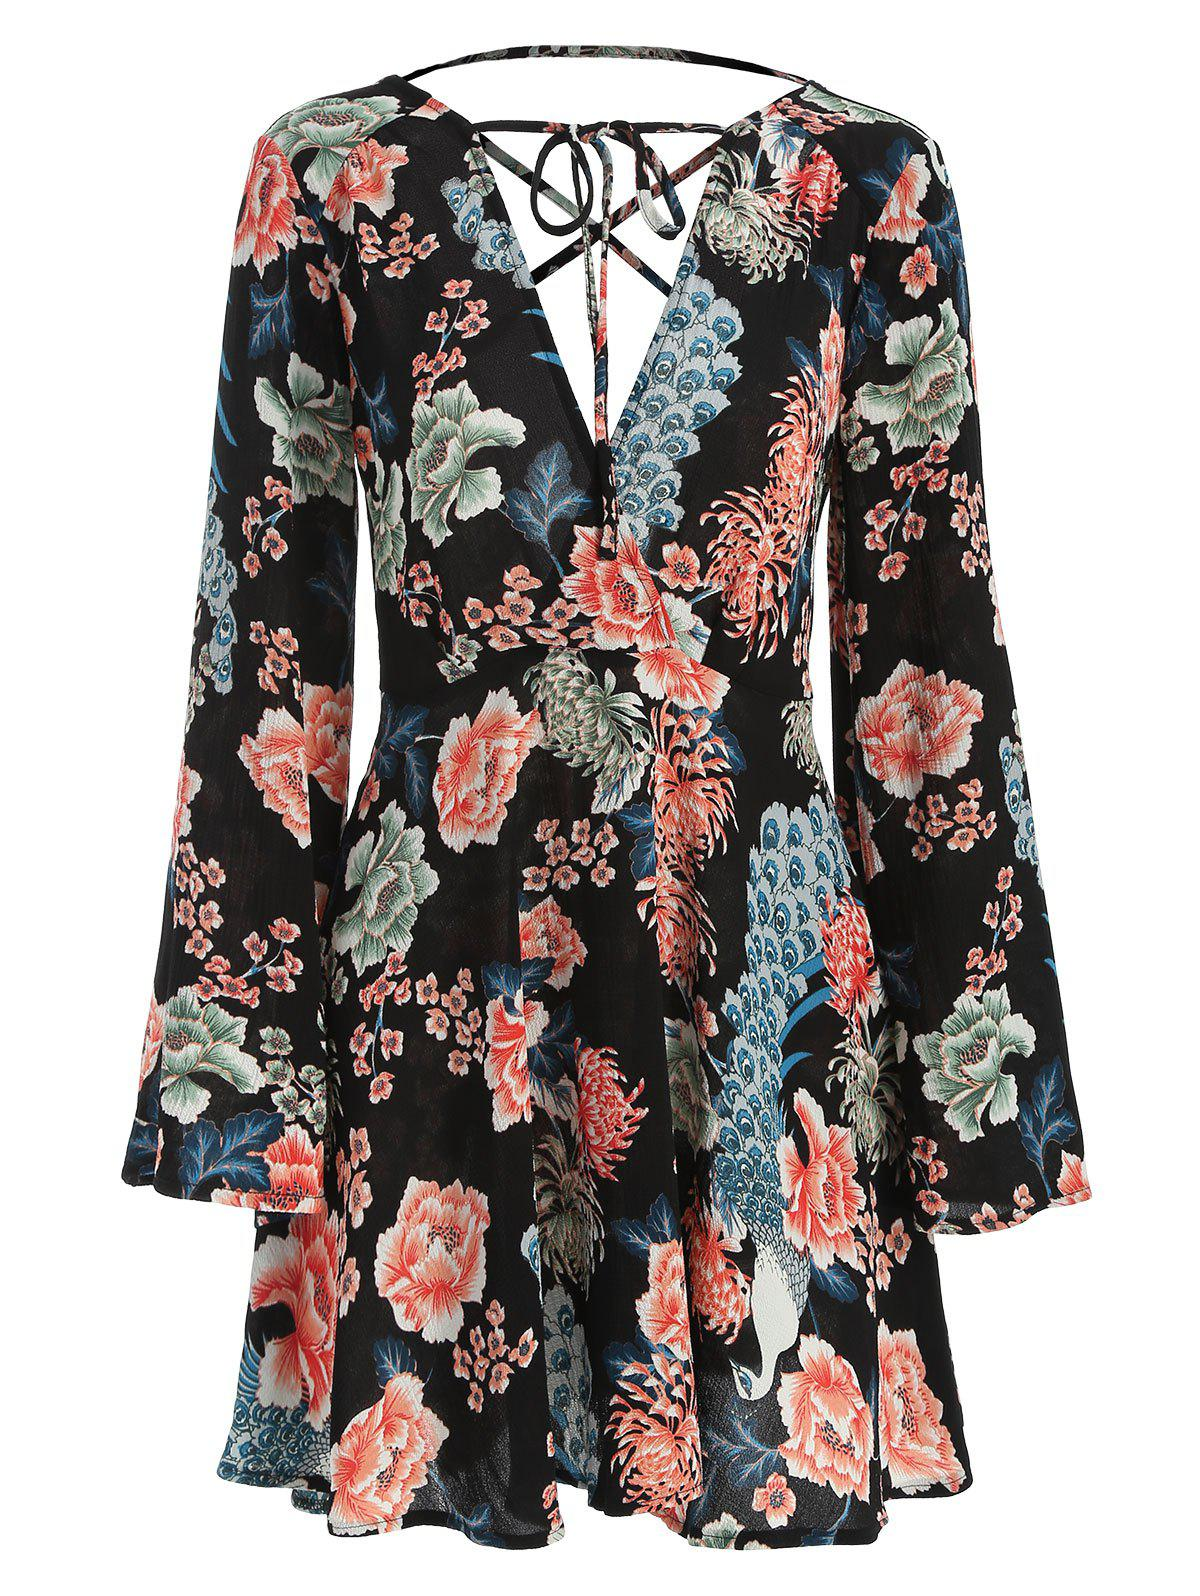 Shop Criss Cross Floral Print Surplice Dress